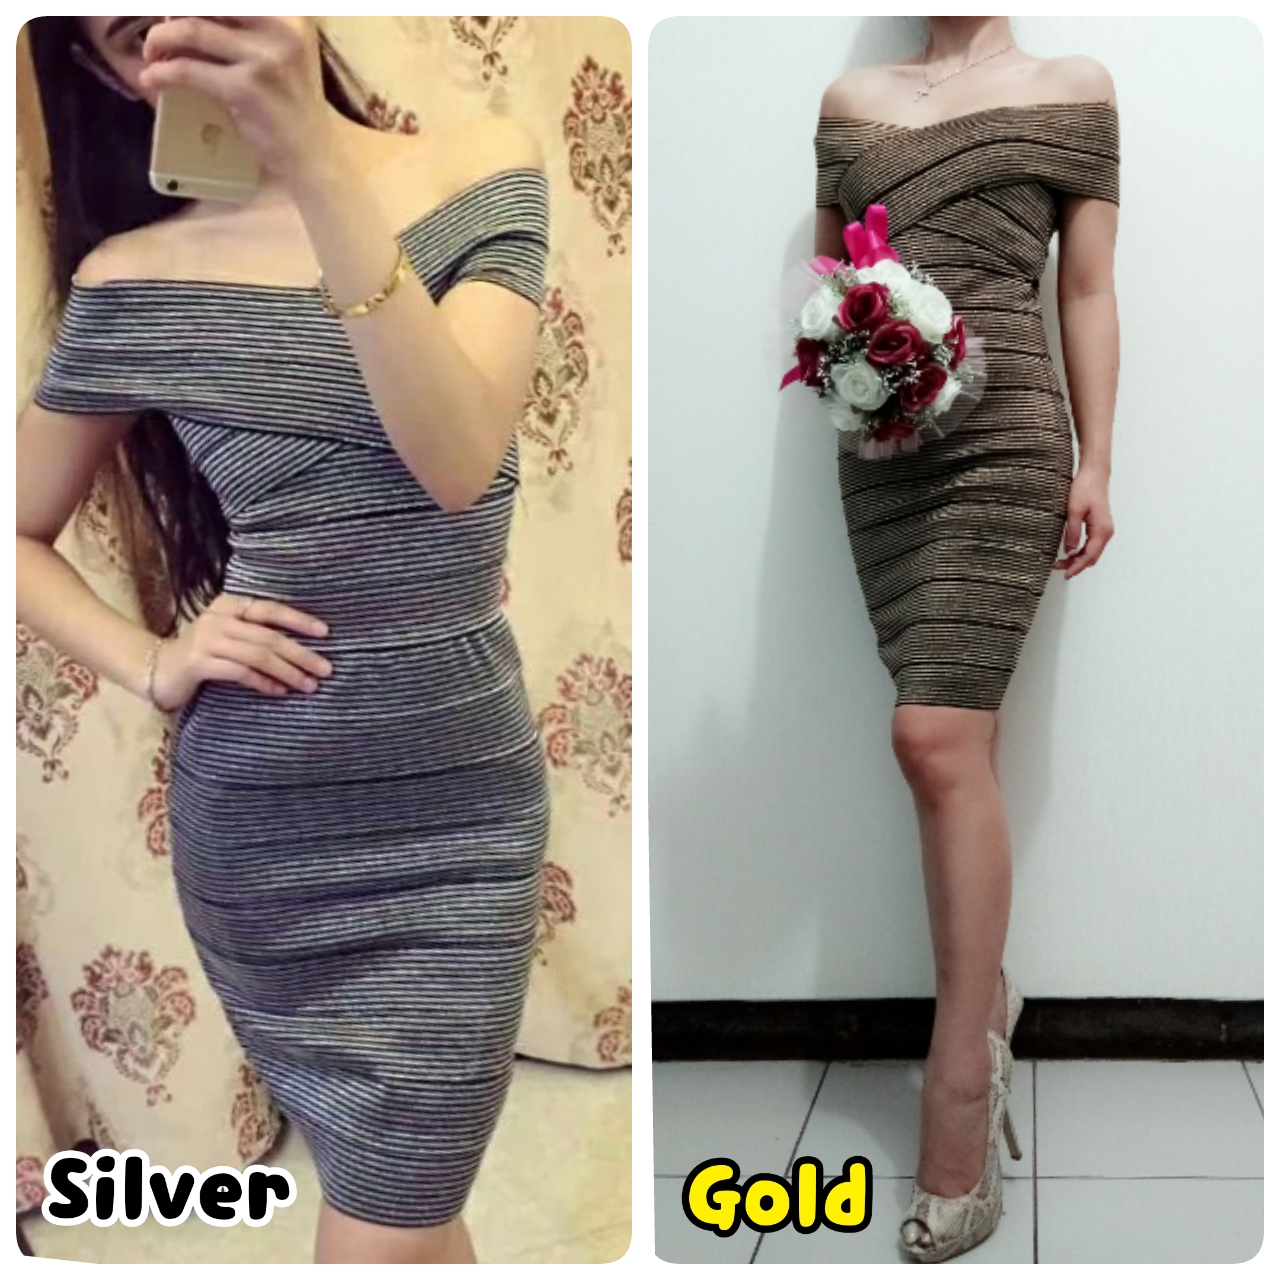 harga Dress Herve Leger Bandage Motif Salur Bodycon Sabrina Import Murah High Quality elevenia.co.id